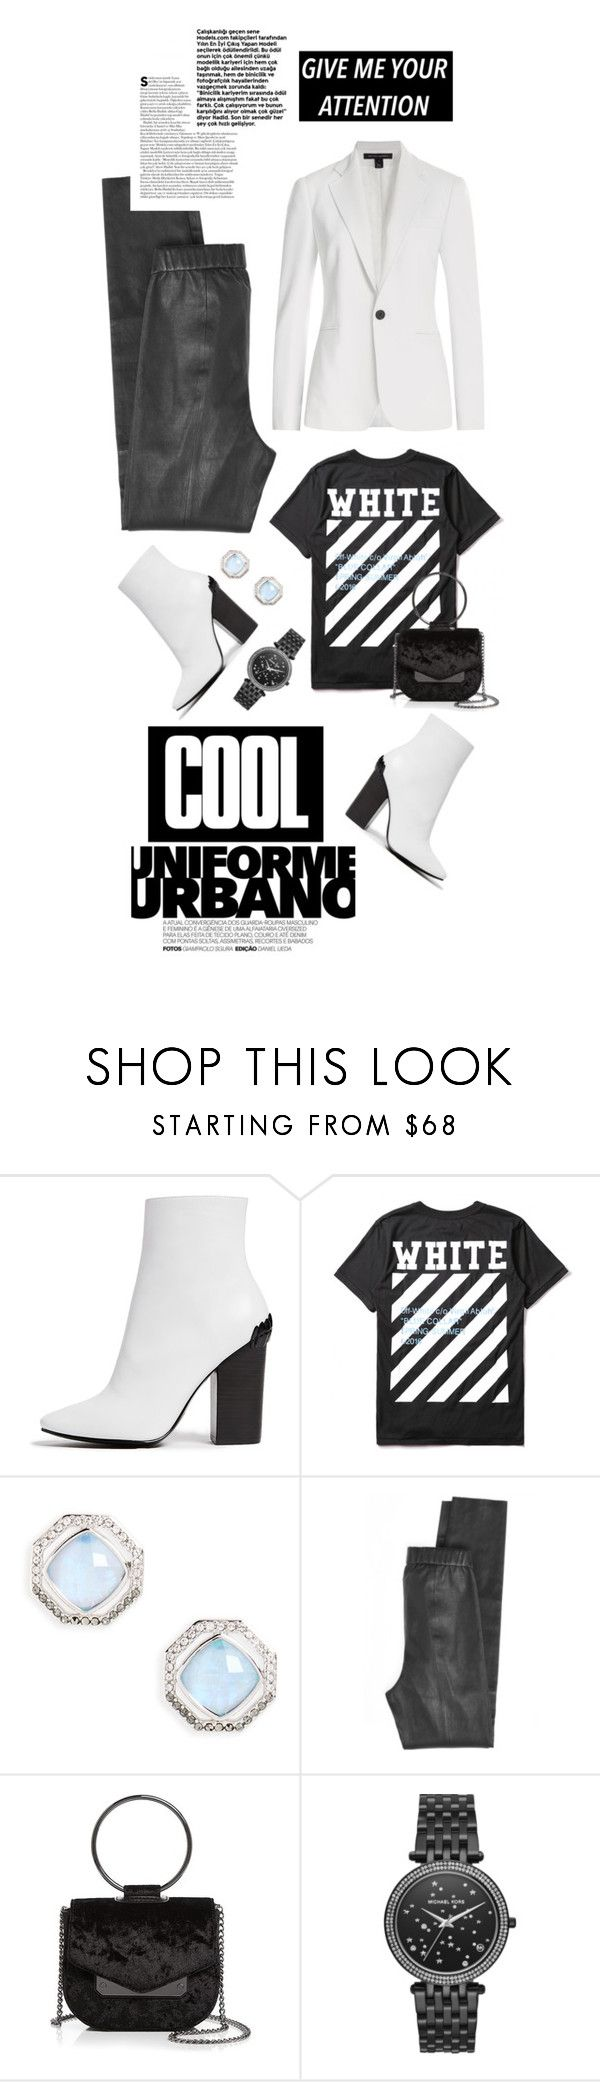 """COOL URBAN STYLE"" by shortyluv718 ❤ liked on Polyvore featuring Kendall + Kylie, Judith Jack, Calypso St. Barth, Nasty Gal, Michael Kors and Ralph Lauren Black Label"